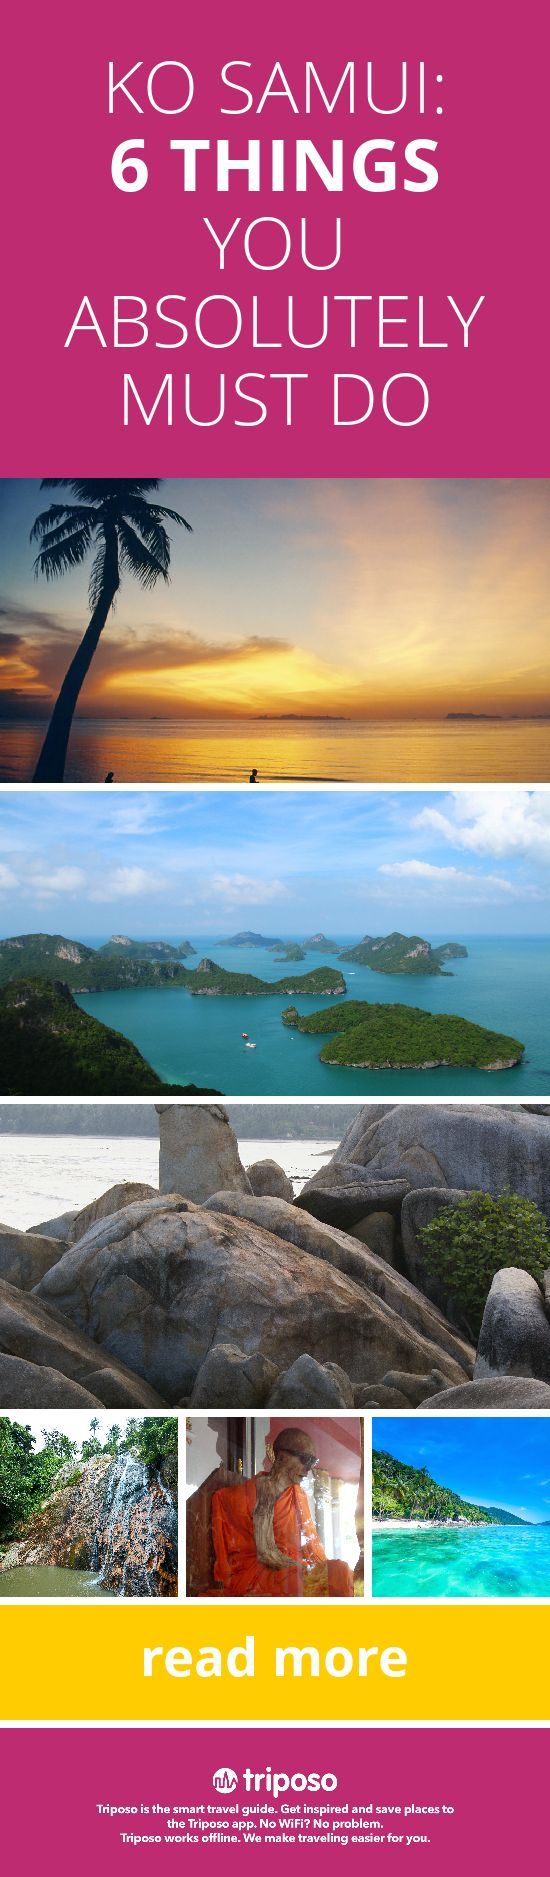 If you decide to wander farther than your hotel pool, here are 6 must do activities in Ko Samui, Thailand #KOSAMUI #THAILAND #PARADISE #WANDERFREELY